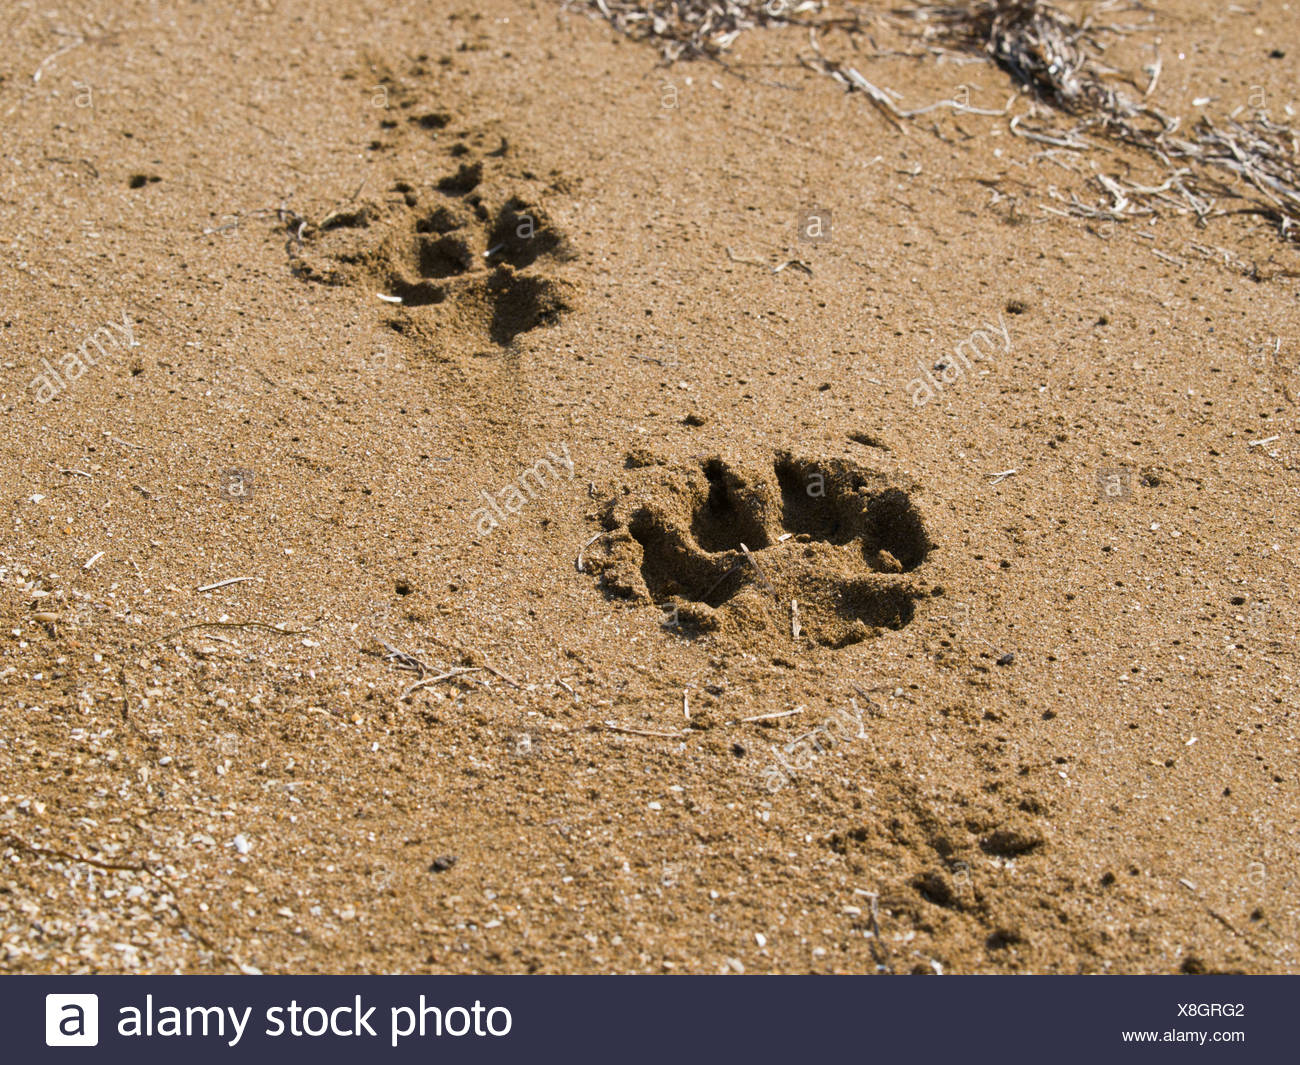 Azerbaijan, Europe, Caucasus, Shirvan, national park, Wolf, tracks, nature, daylight, sand, desert, savanna, print, - Stock Image